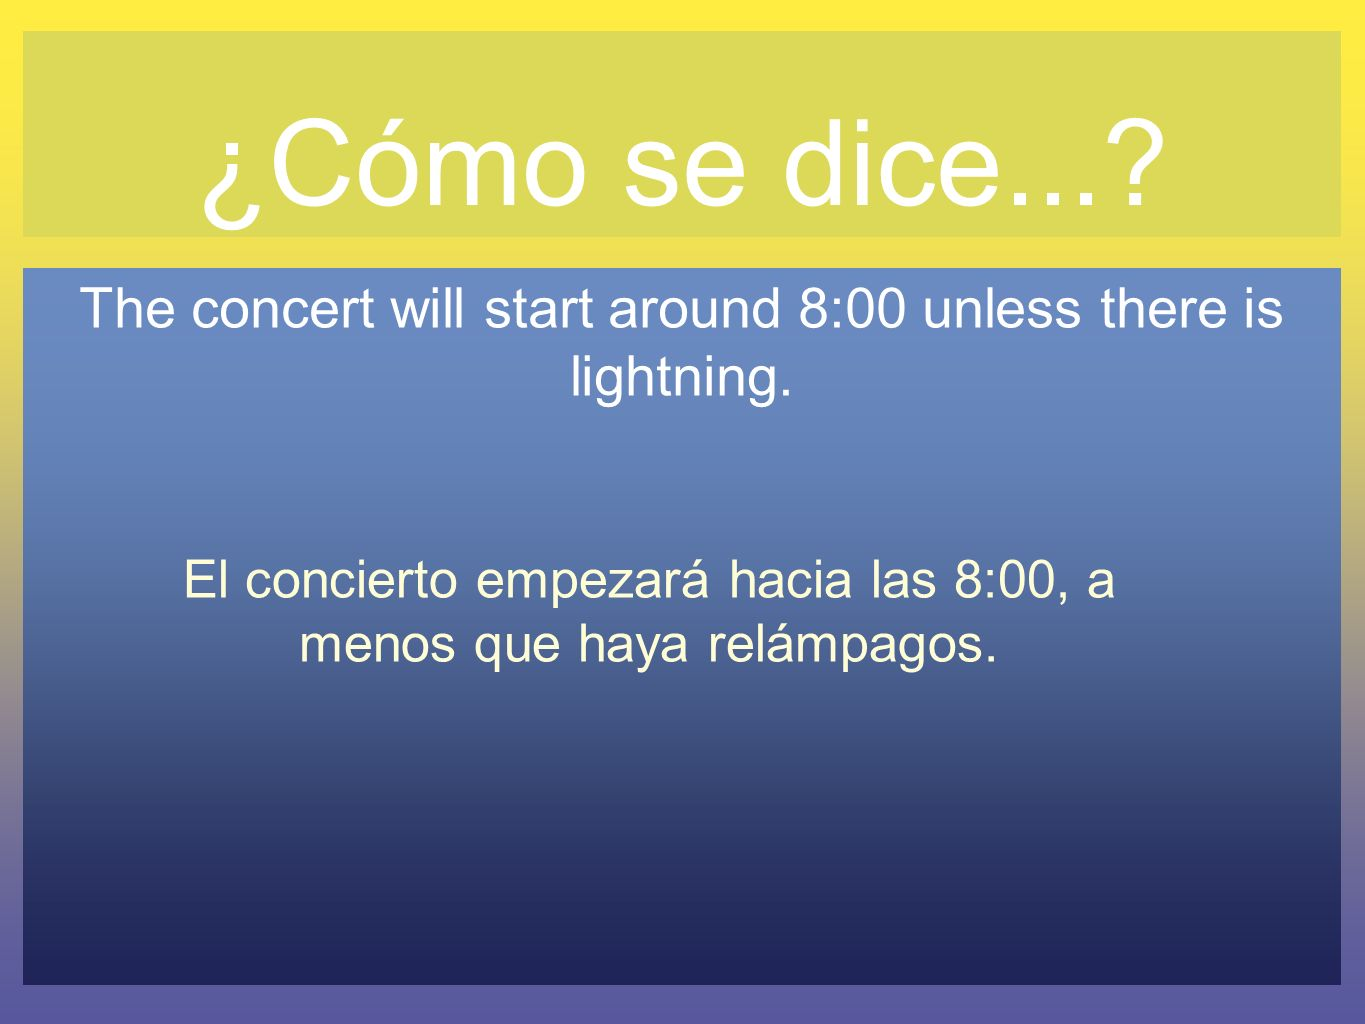 ¿Cómo se dice.... The concert will start around 8:00 unless there is lightning.